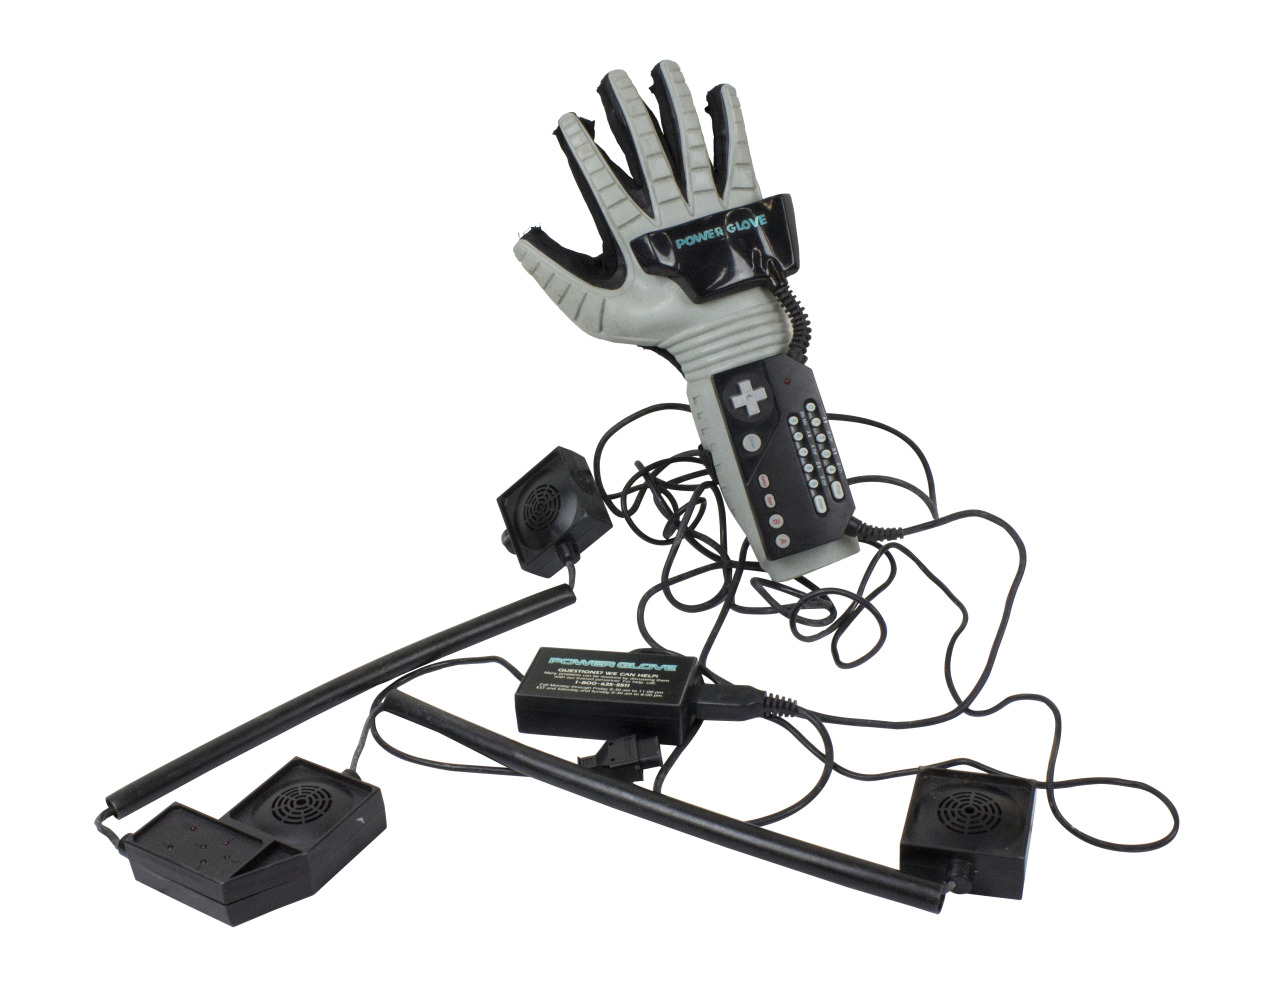 The bureau of suspended objects item 184 nintendo power glove found on 8 7 15